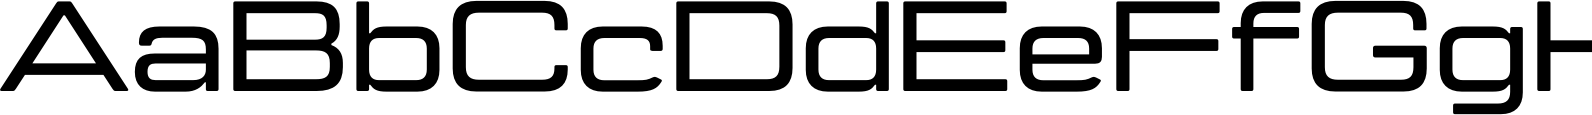 Manifold Extended CF Demi Bold Font